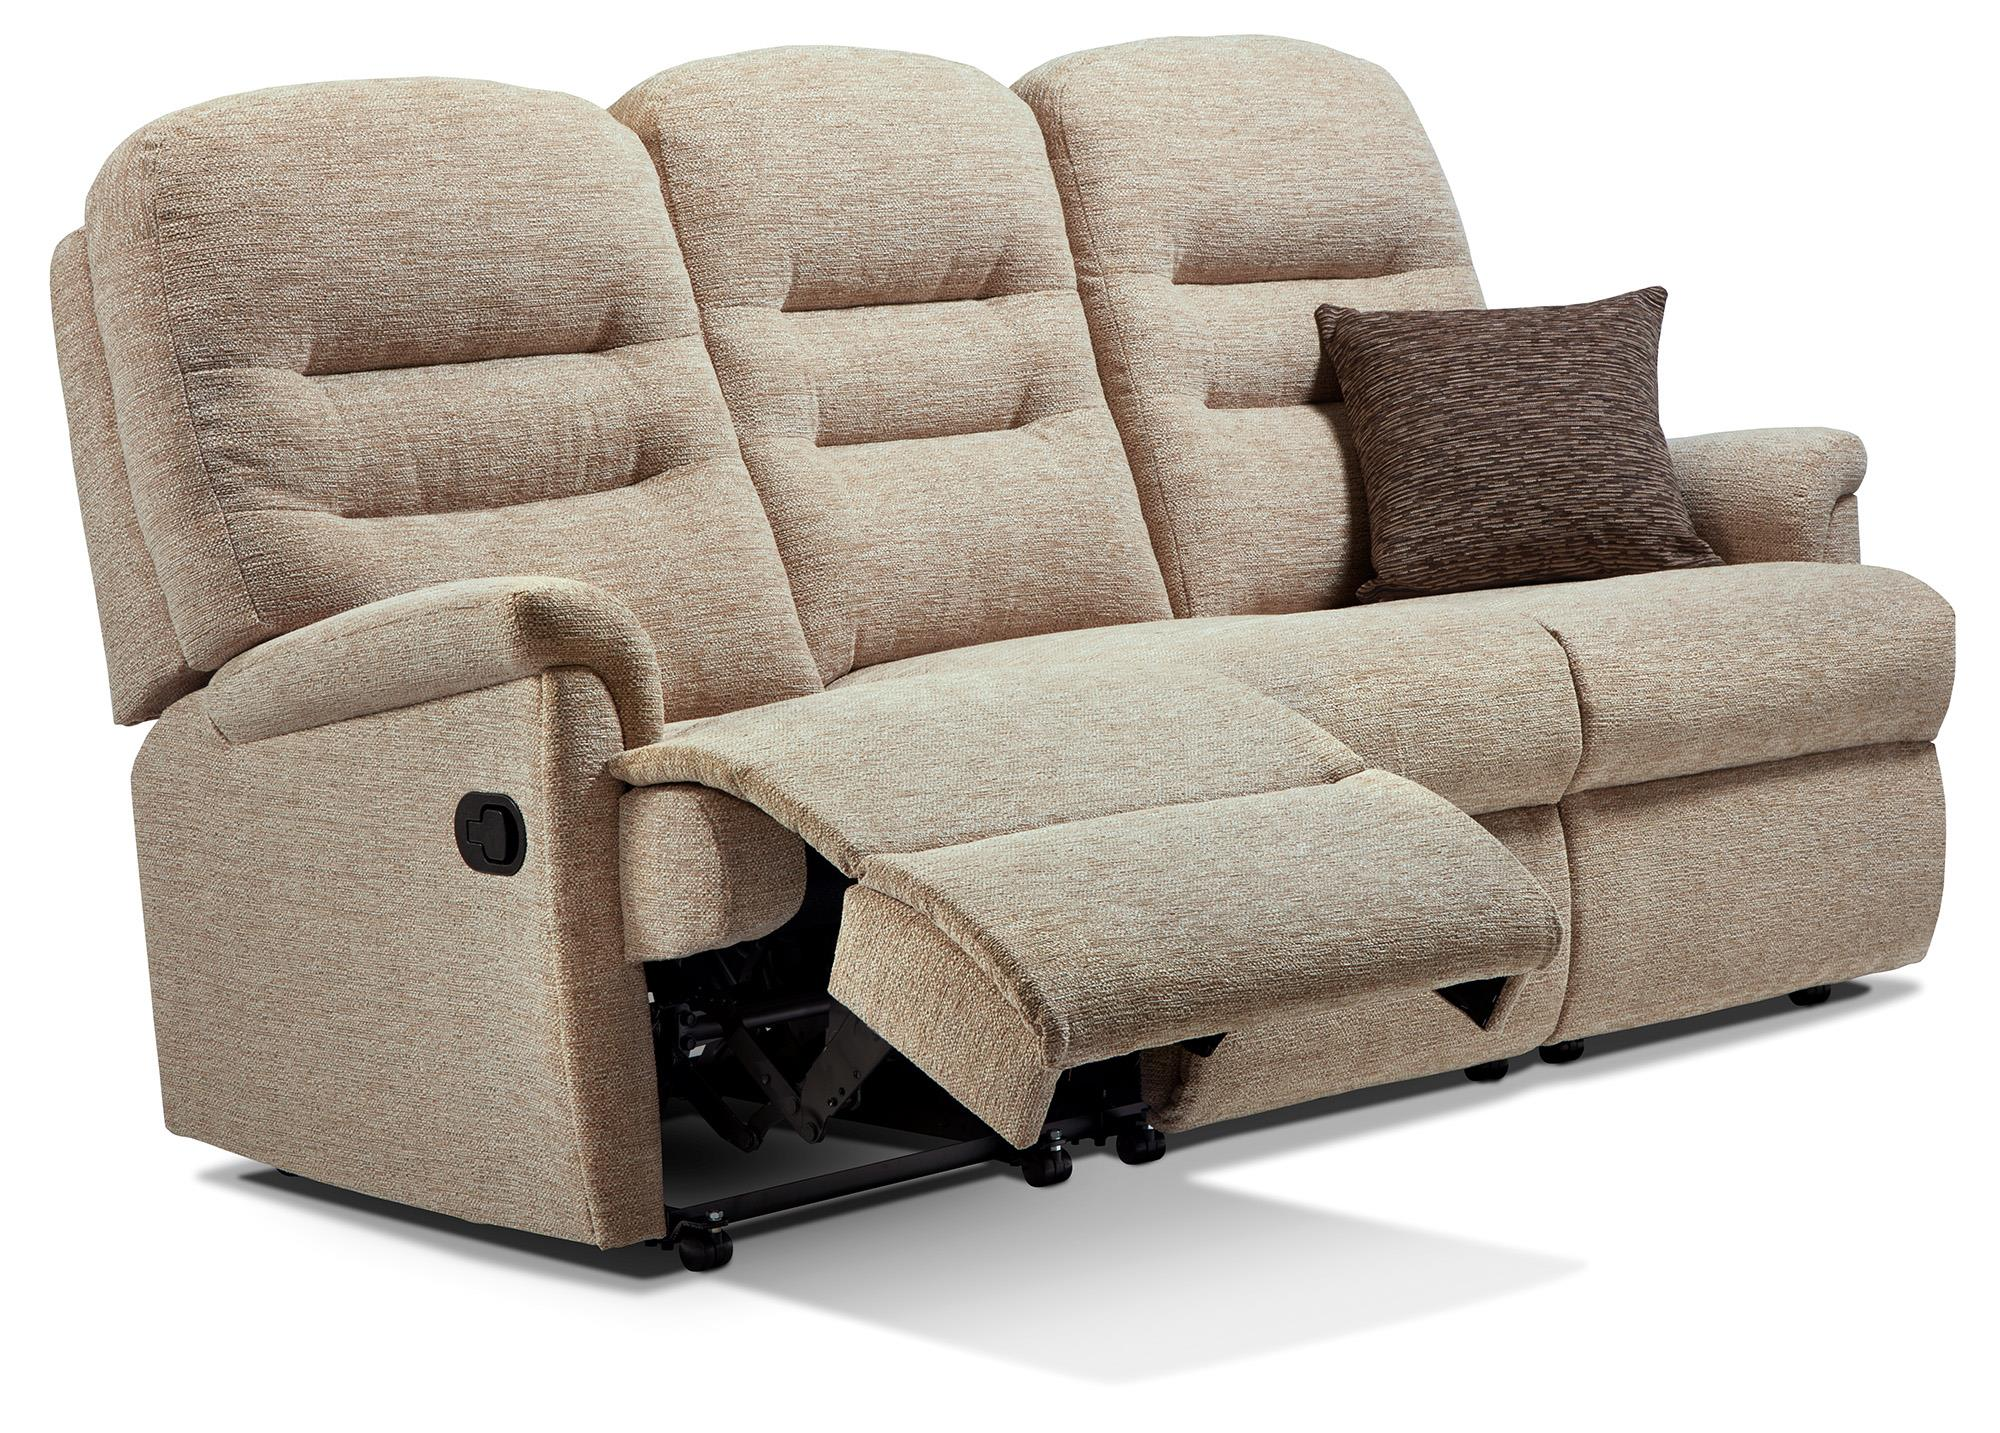 KESWICK - 3 Seater Reclining Settee & Chair - by Sherborne